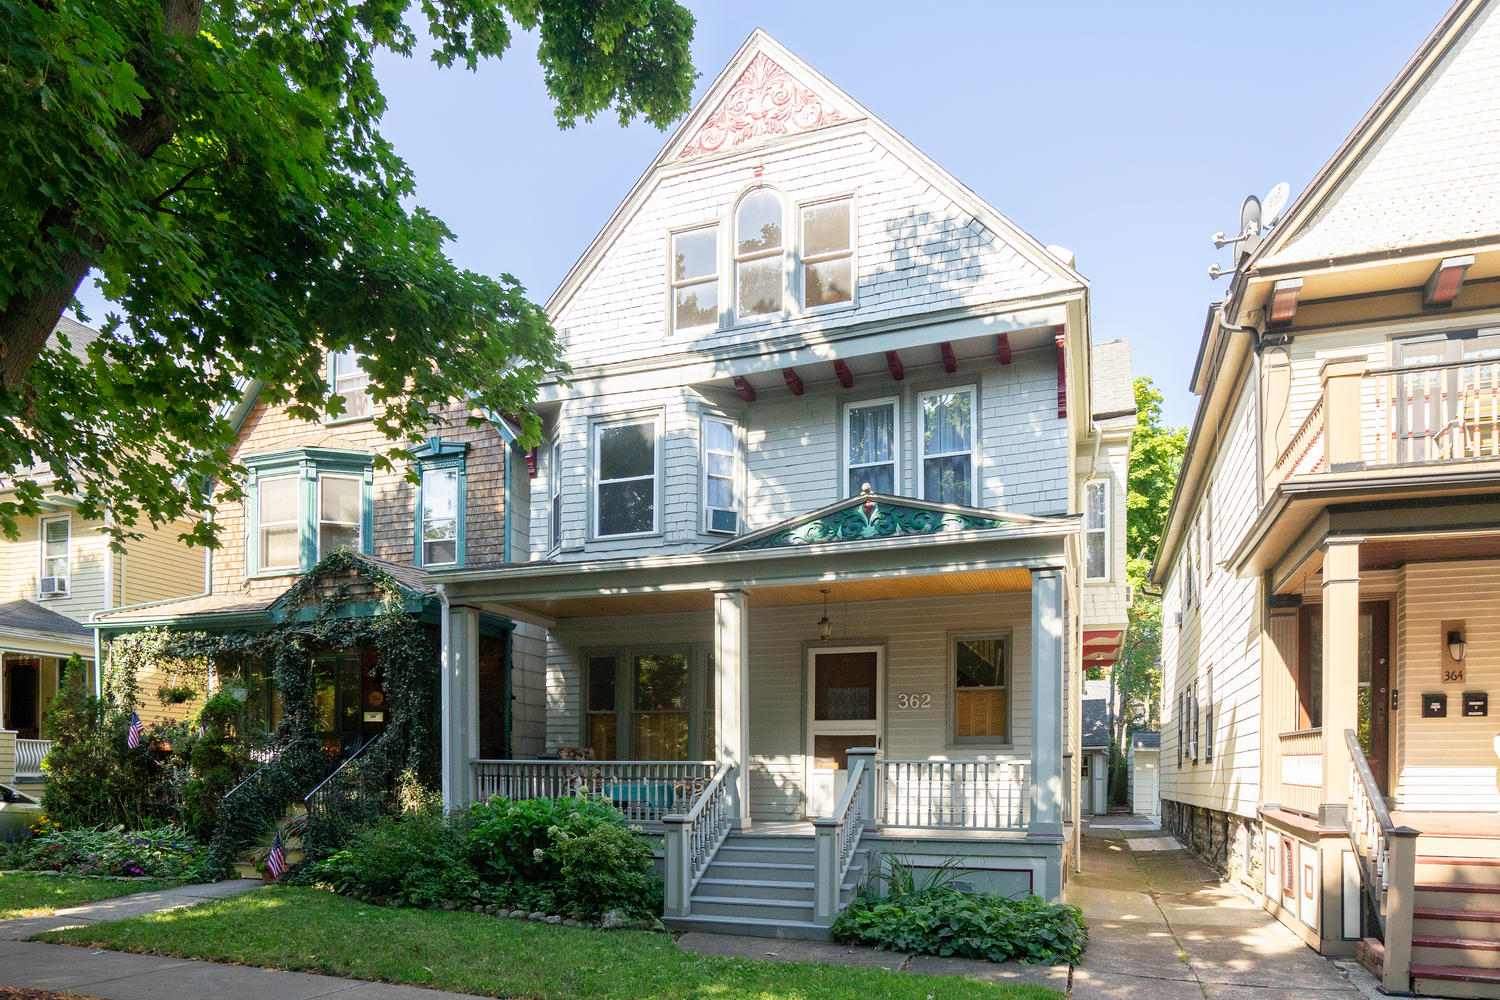 OFF MARKET / STAY TUNED FOR THE SPRING:362 Ashland Ave, Buffalo | $294,900